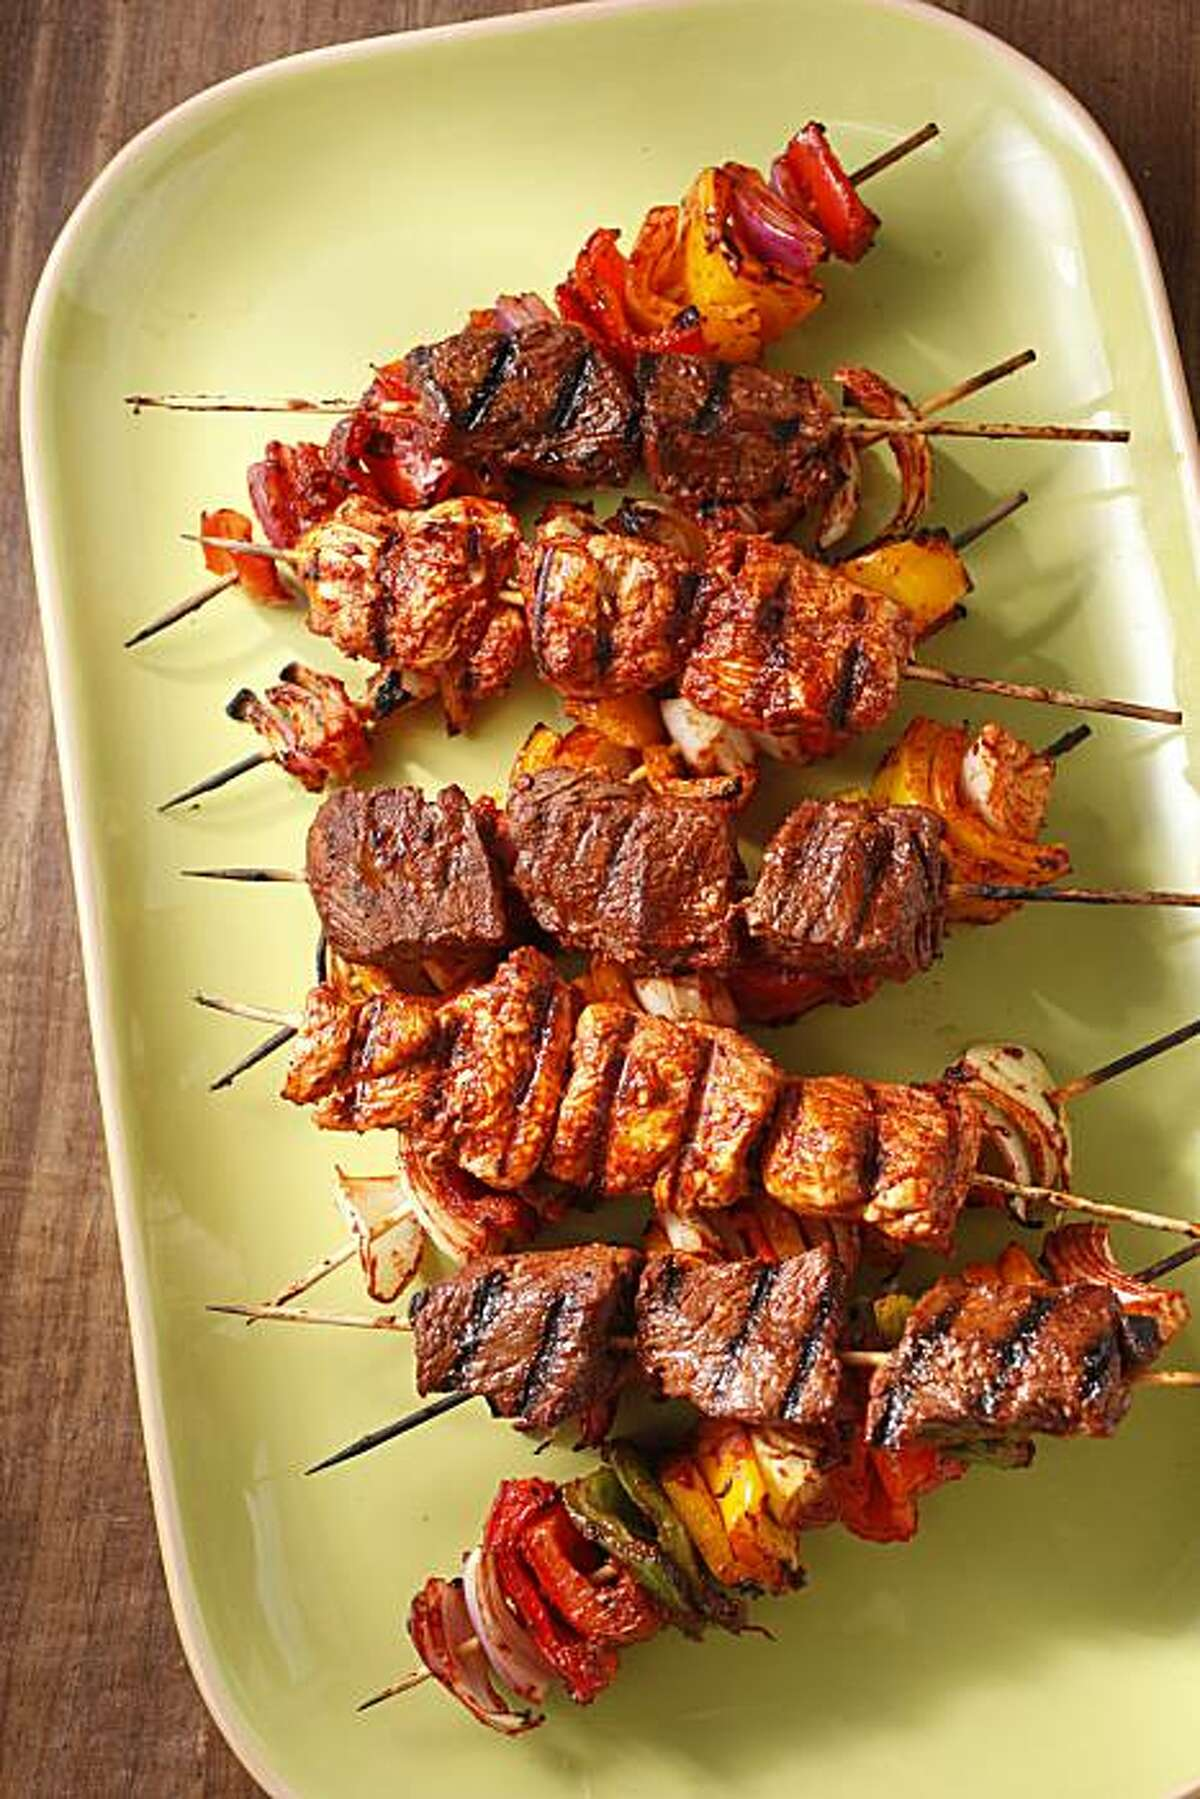 Grilled skewers with anticucho sauce is seen in San Francisco, Calif., on October 13, 2010. Food styled by Natalie Knight.